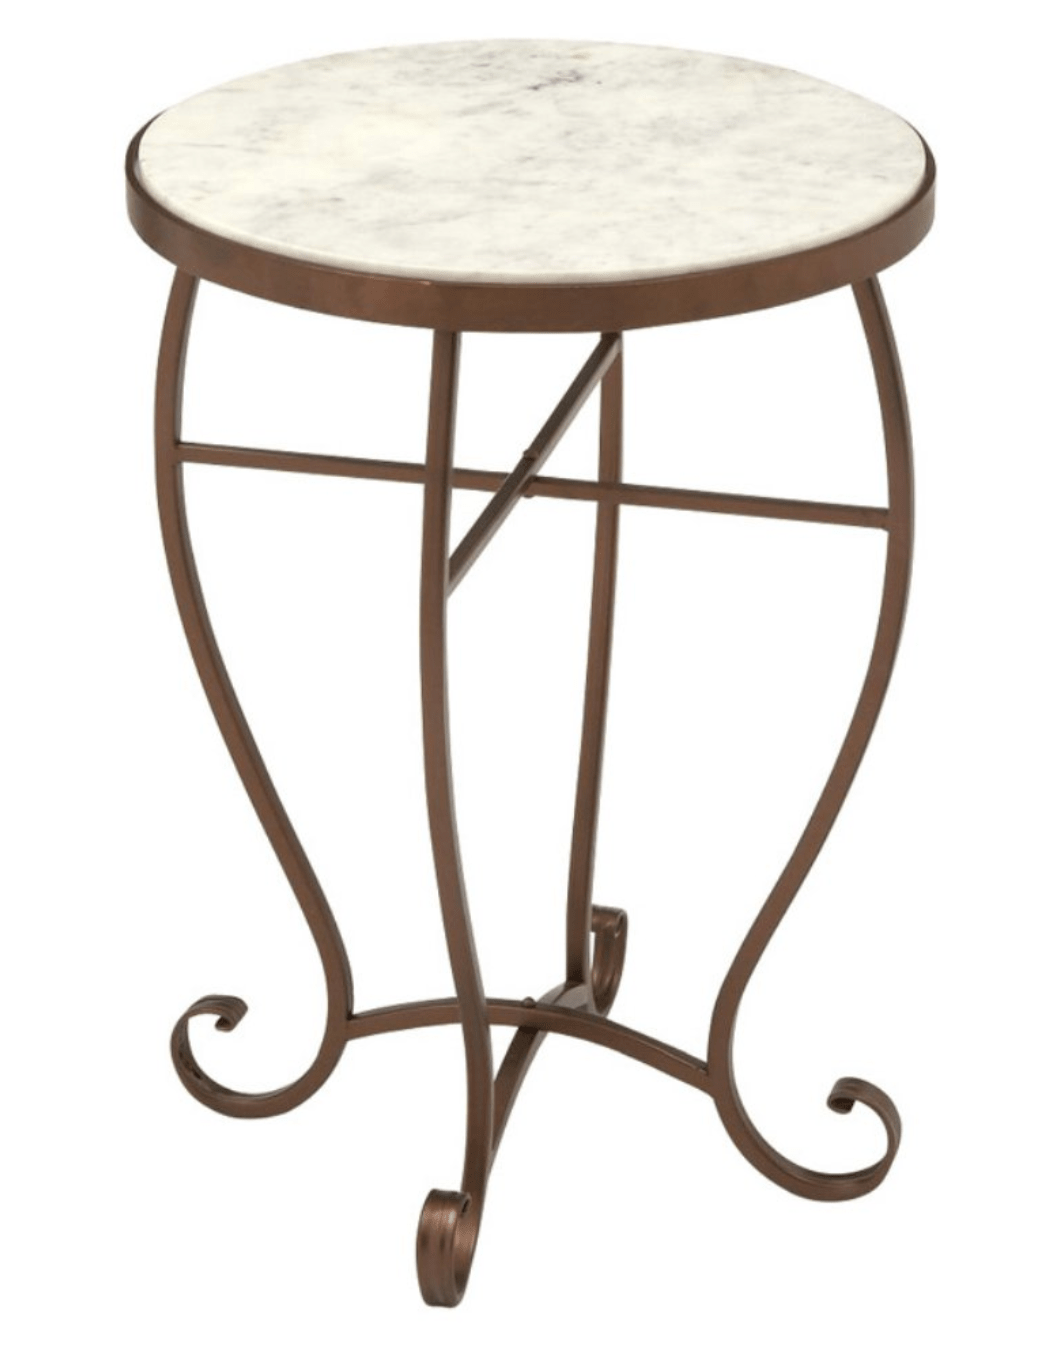 lovely small accent table for compact marble round min top outdoor corner weber kettle side glass pedestal white wood end aluminum patio furniture black kitchen chairs bedside